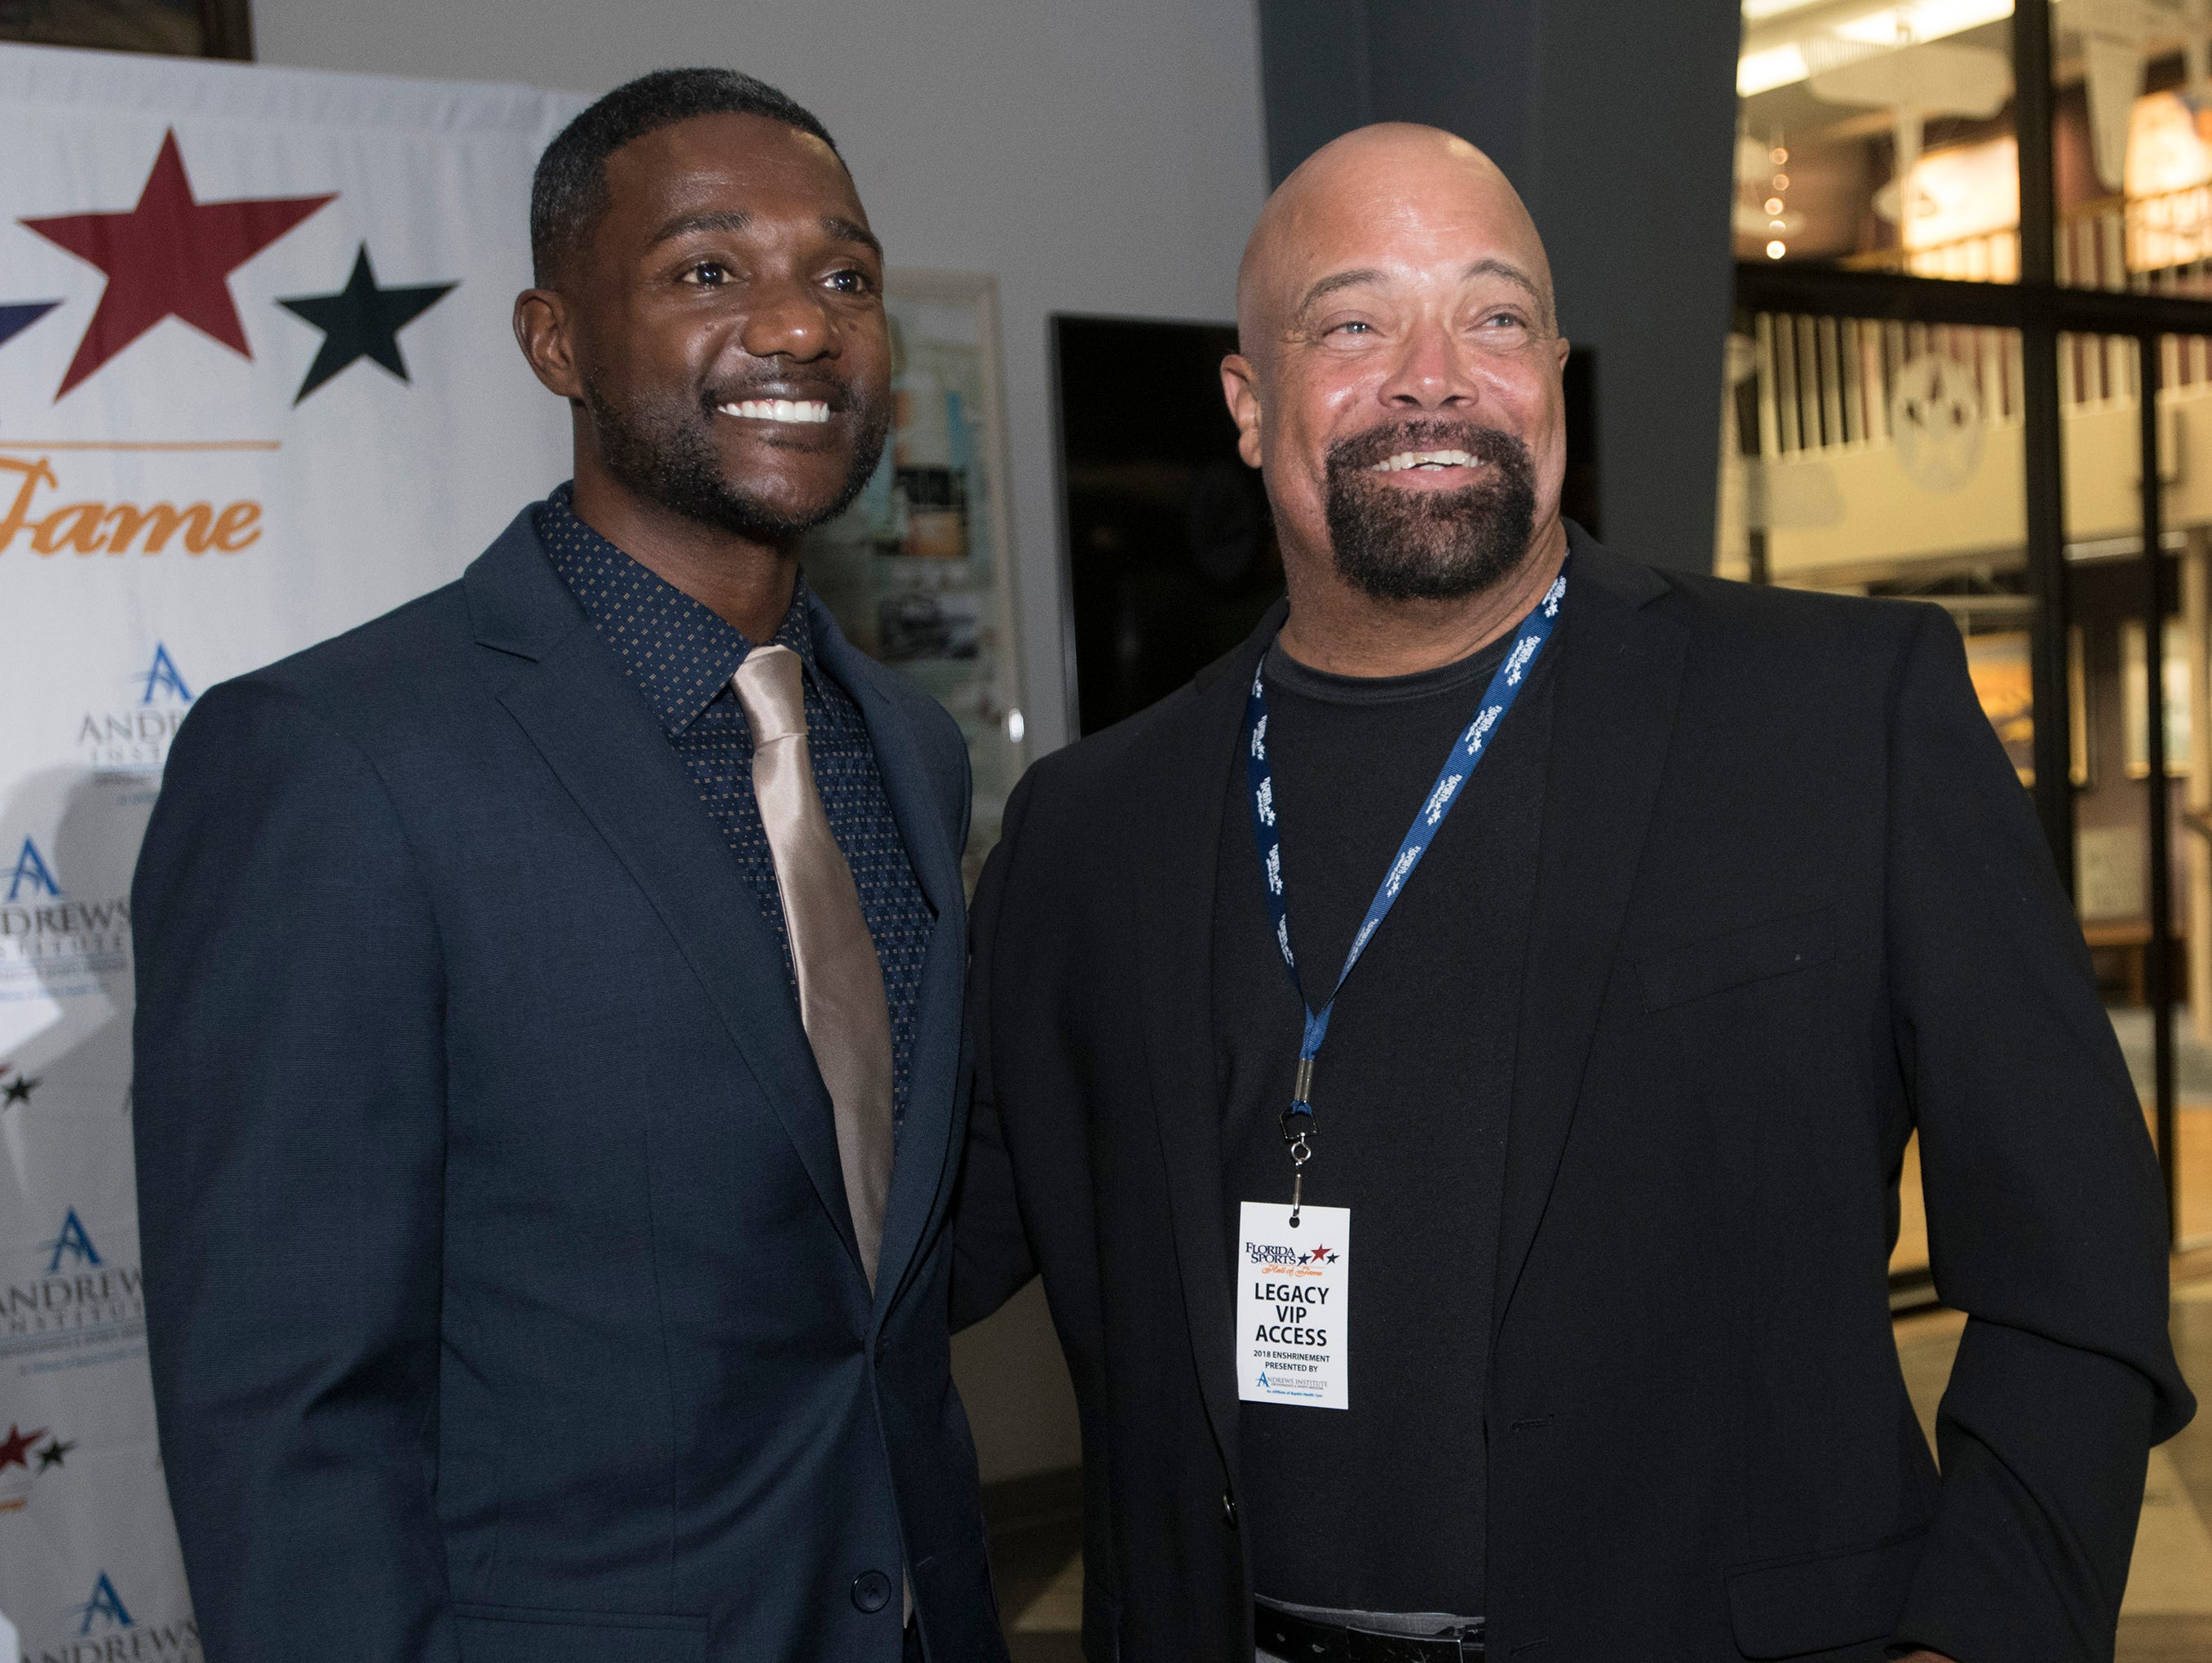 Pensacola own, Justin Gatlin and Adrian Stills pose for photographs before the start of Wednesday night's 2018 Florida Sports Hall of Fame Enshrinement Ceremony at the National Naval Aviation Museum.